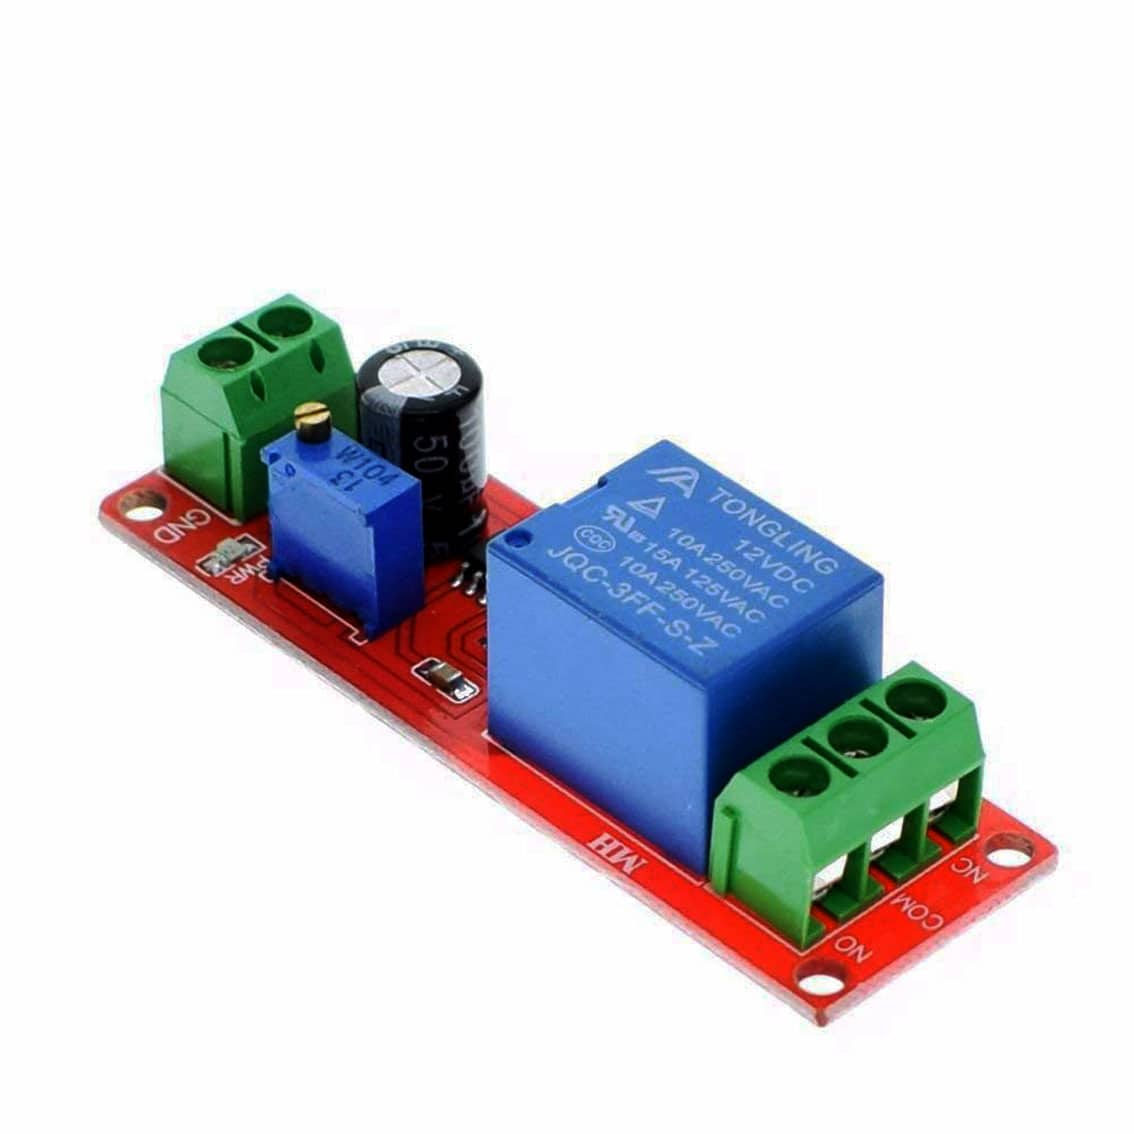 12v Adjustable 0 To 10 Second Delay Relay Module